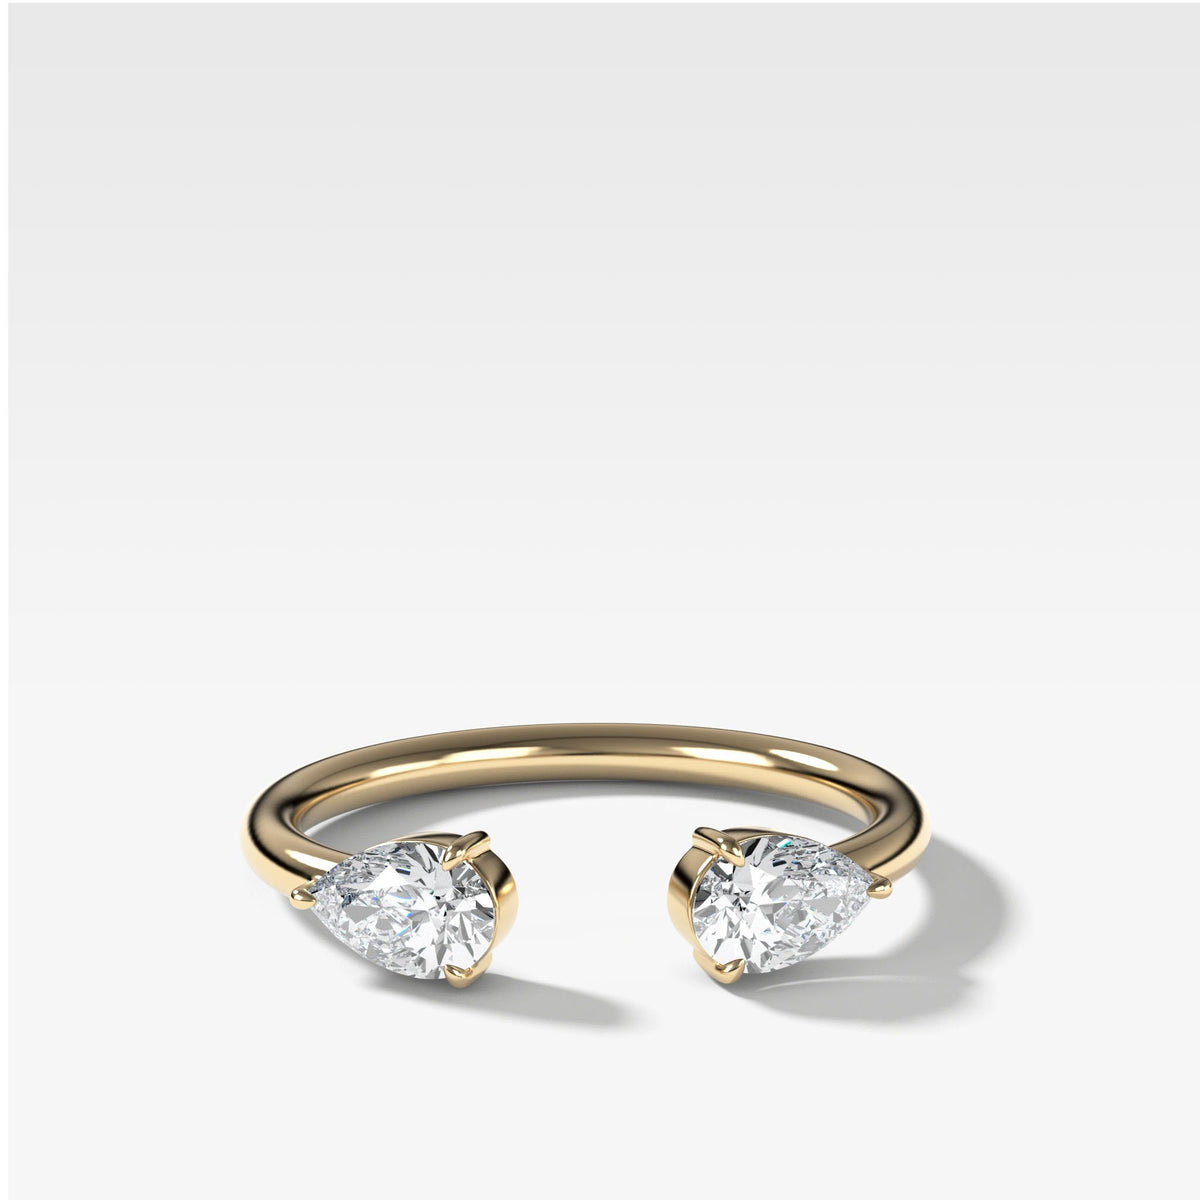 Twin Pear Diamond Finger Cuff in Yellow Gold by Good Stone